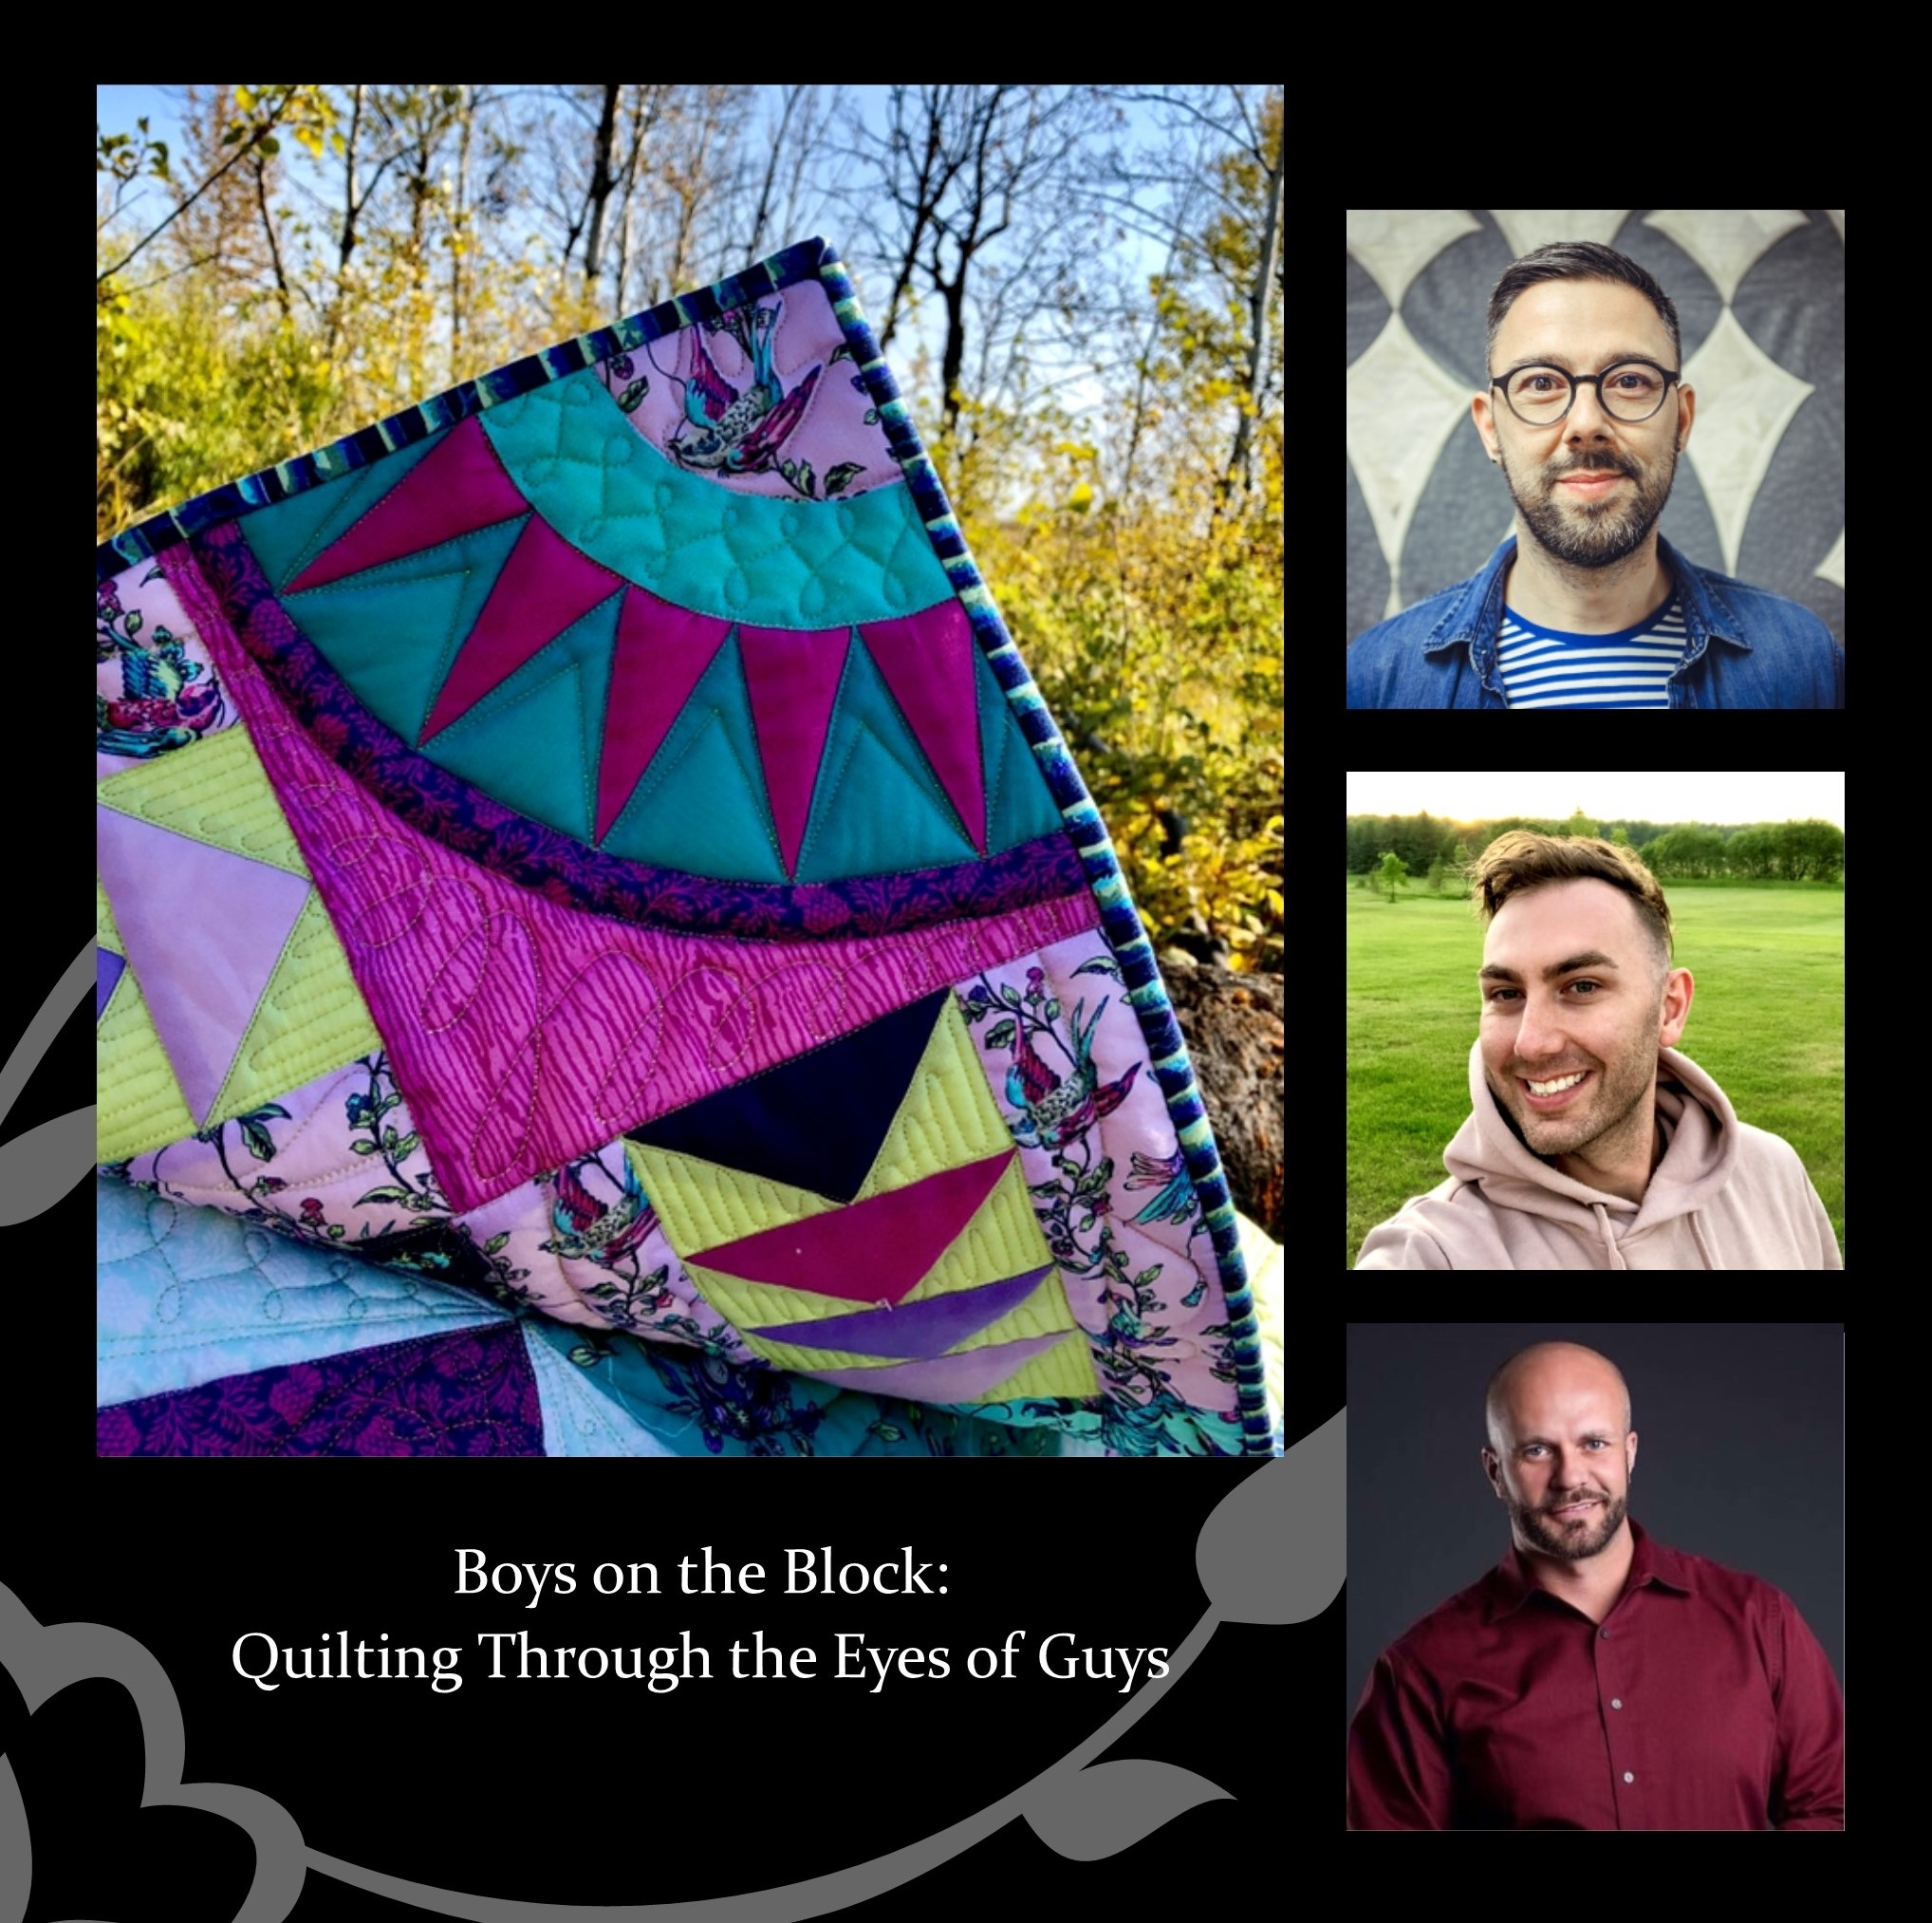 ECF.18630pm - Boys on the Block: Quilting Through the Eyes of Guys - EVENING LECTURE